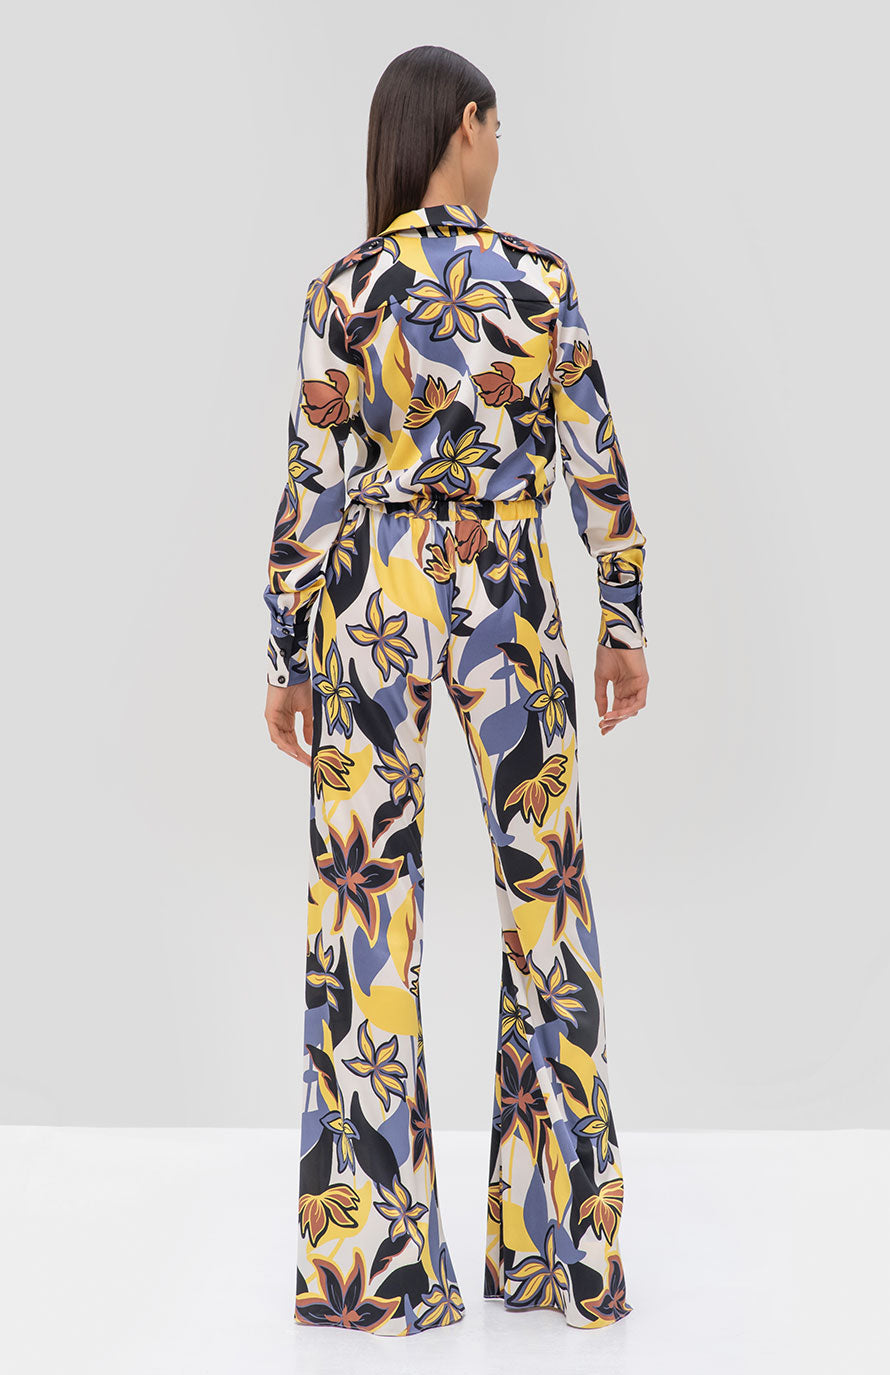 Alexis Beru Top and Zeva Pant in Tahitian Floral from the Pre Fall 2019 Ready To Wear Collection - Rear View